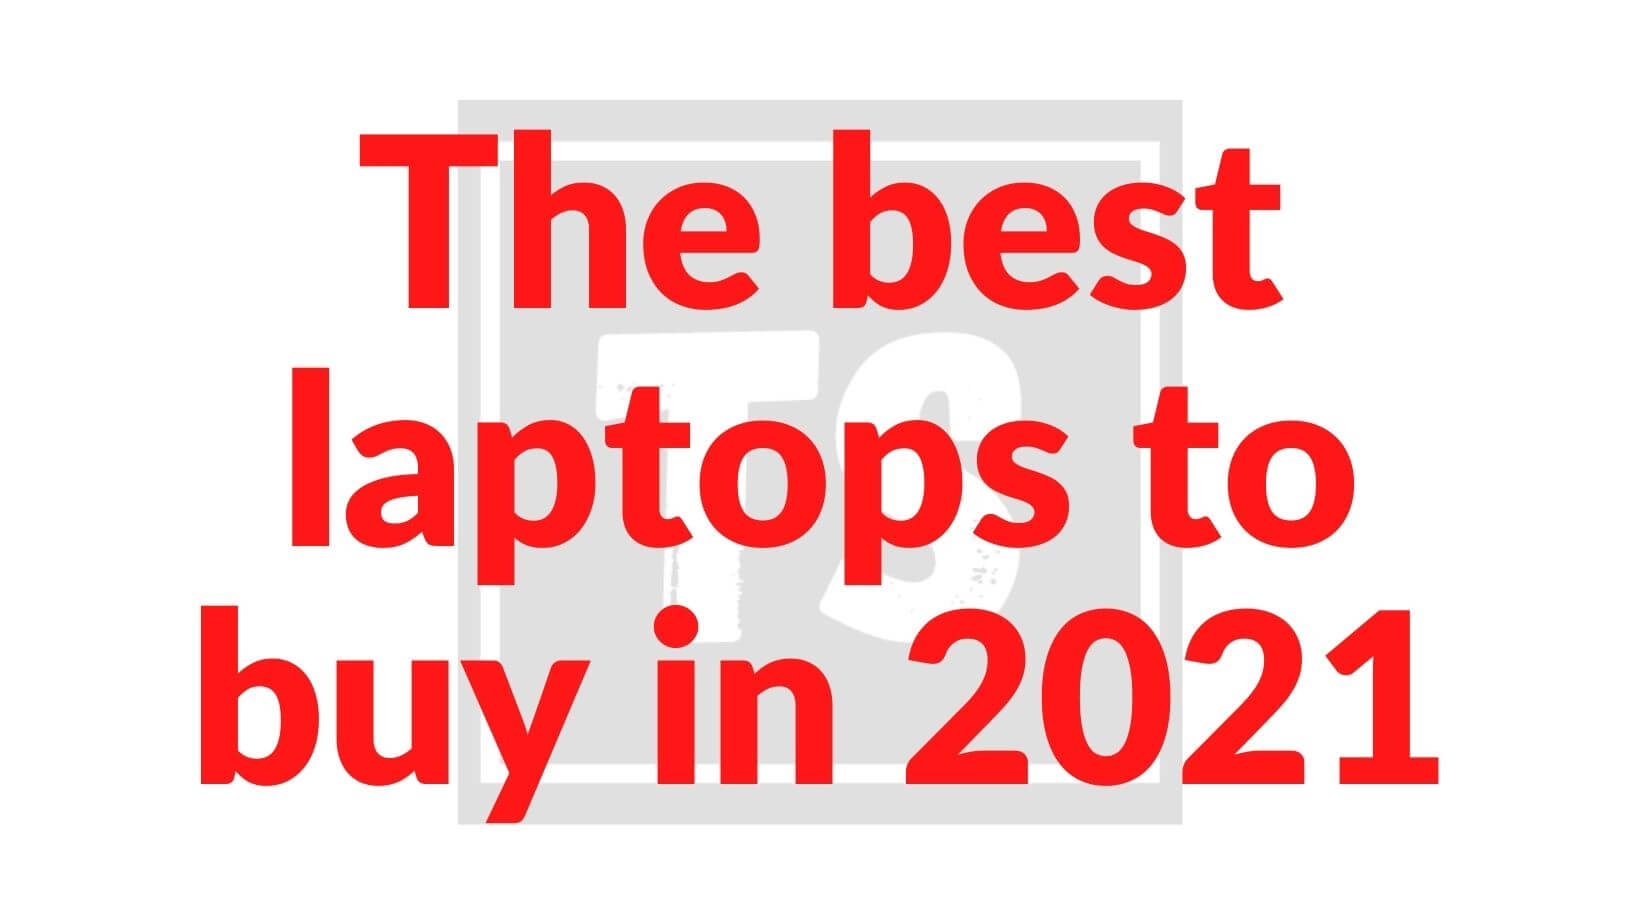 The best laptops to buy in 2021